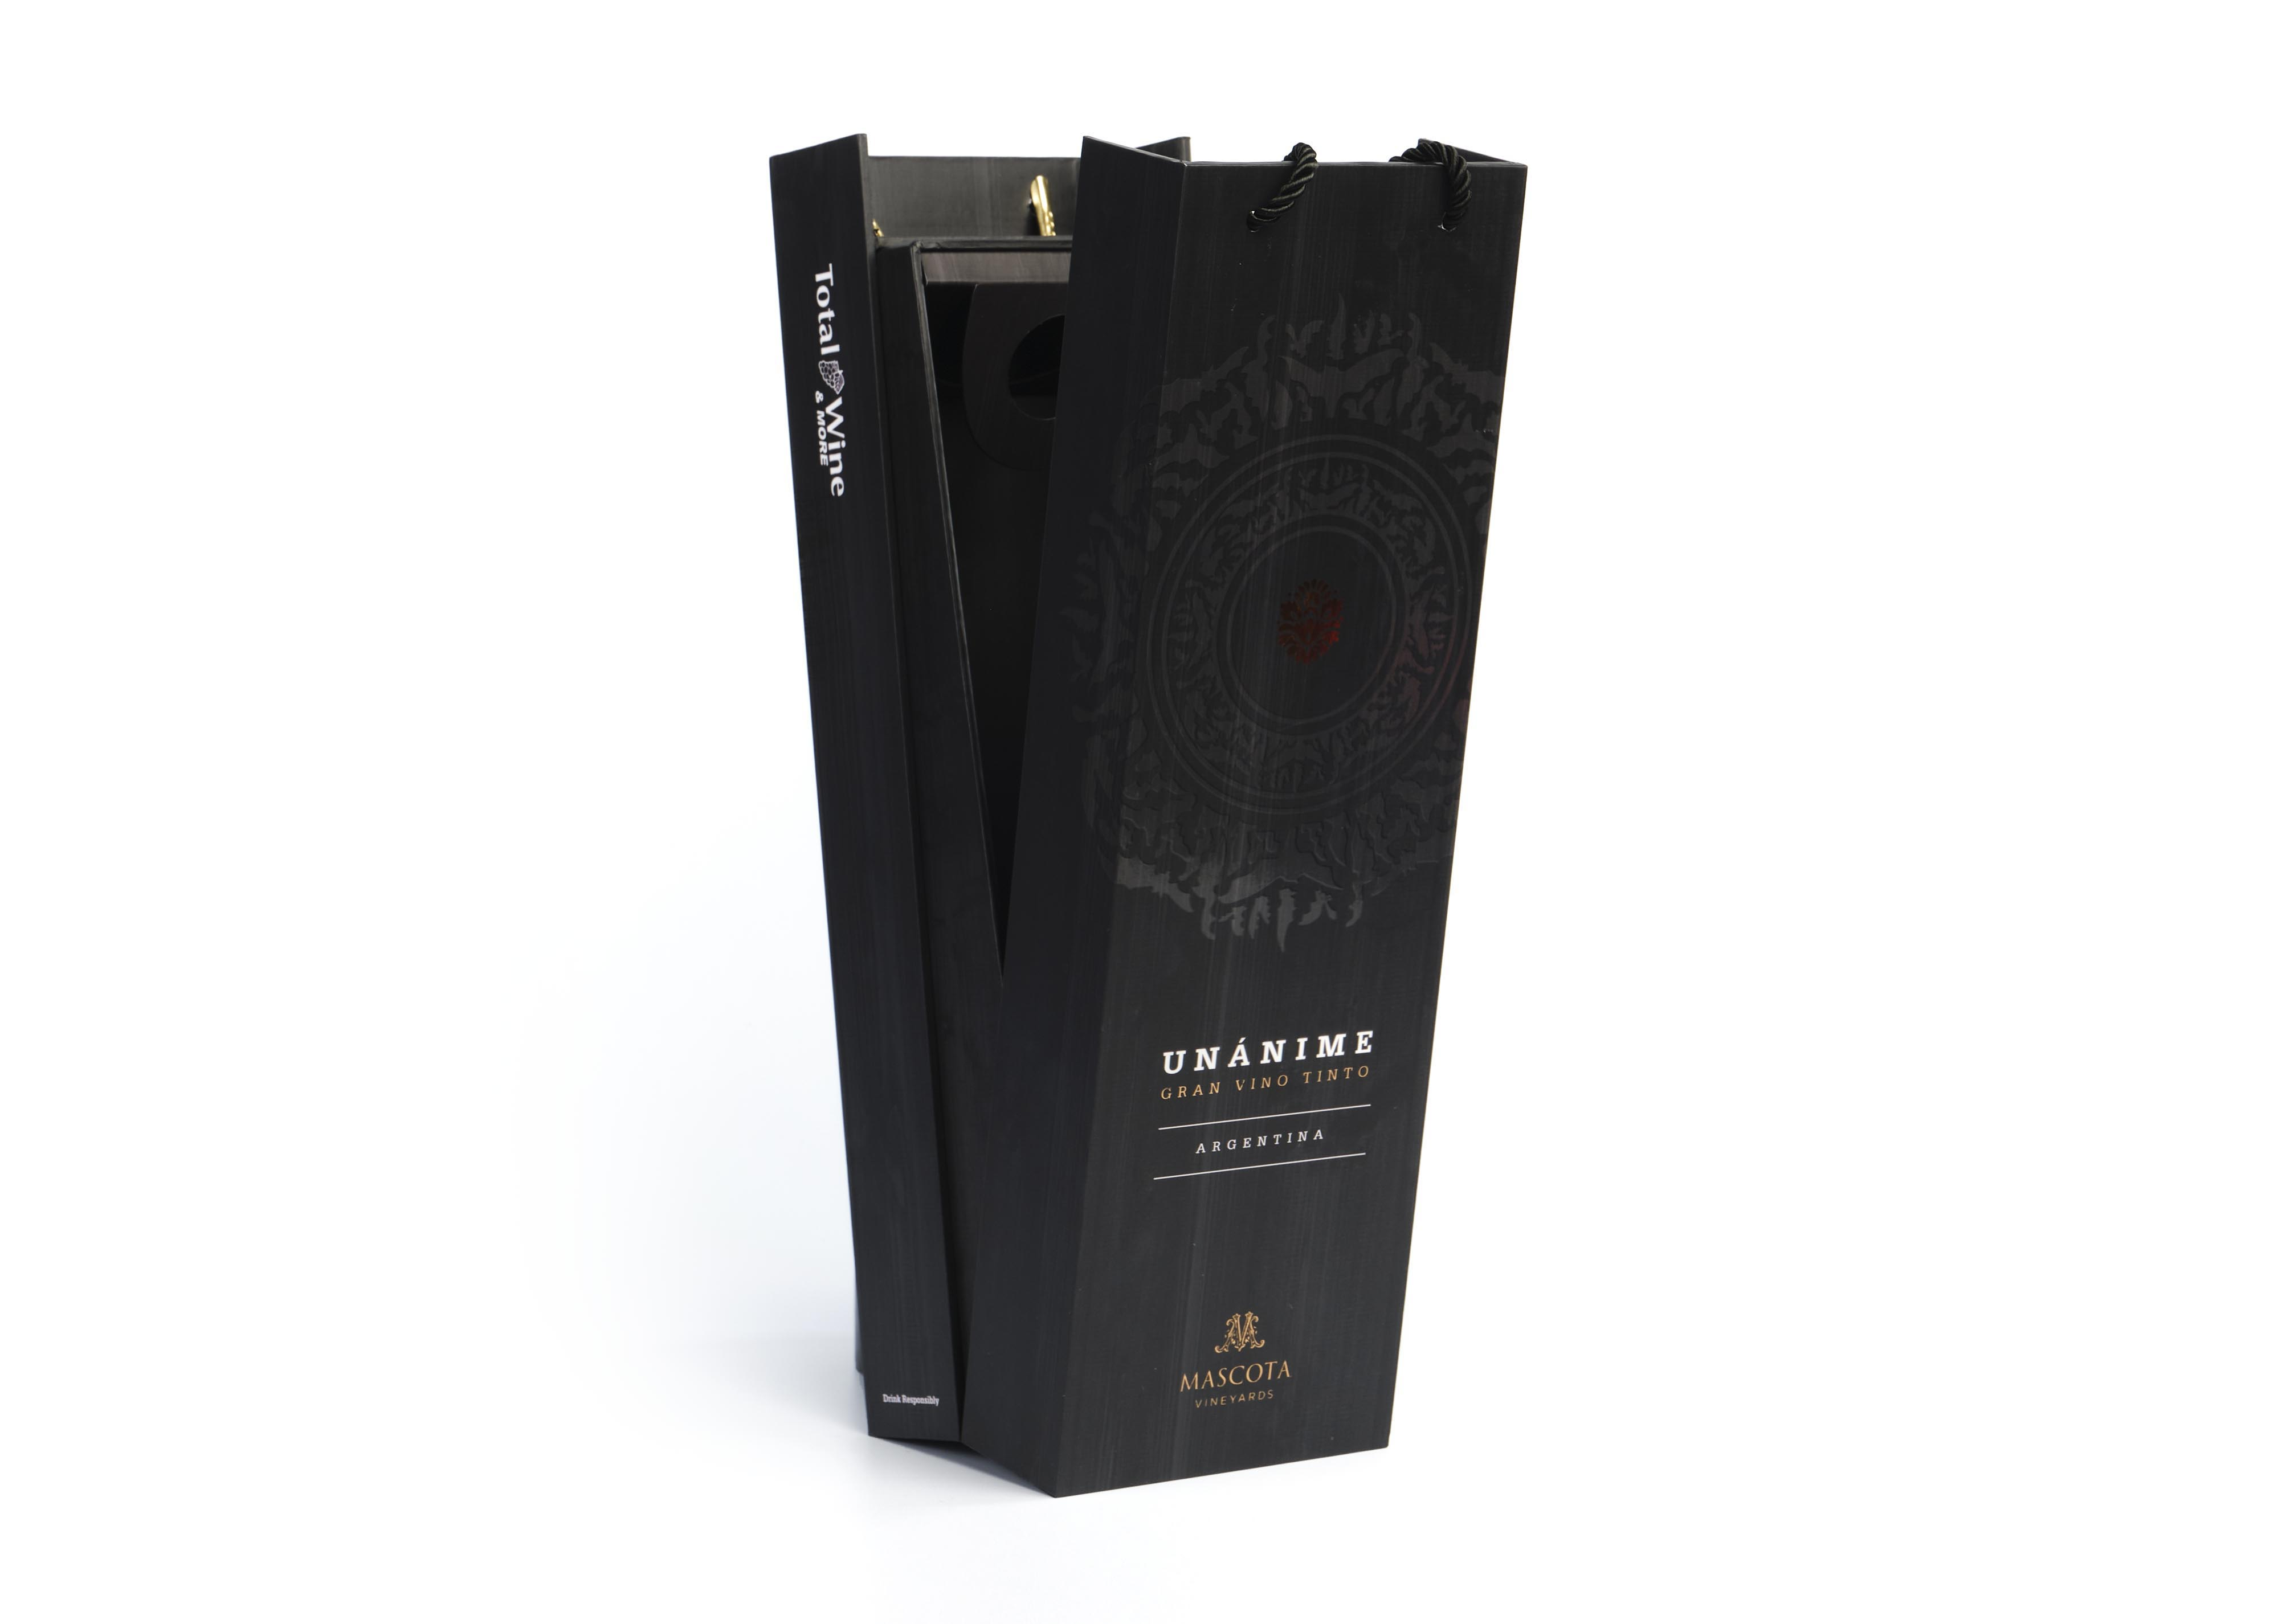 Wine & Spirits Packaging - Unanime Wine Box